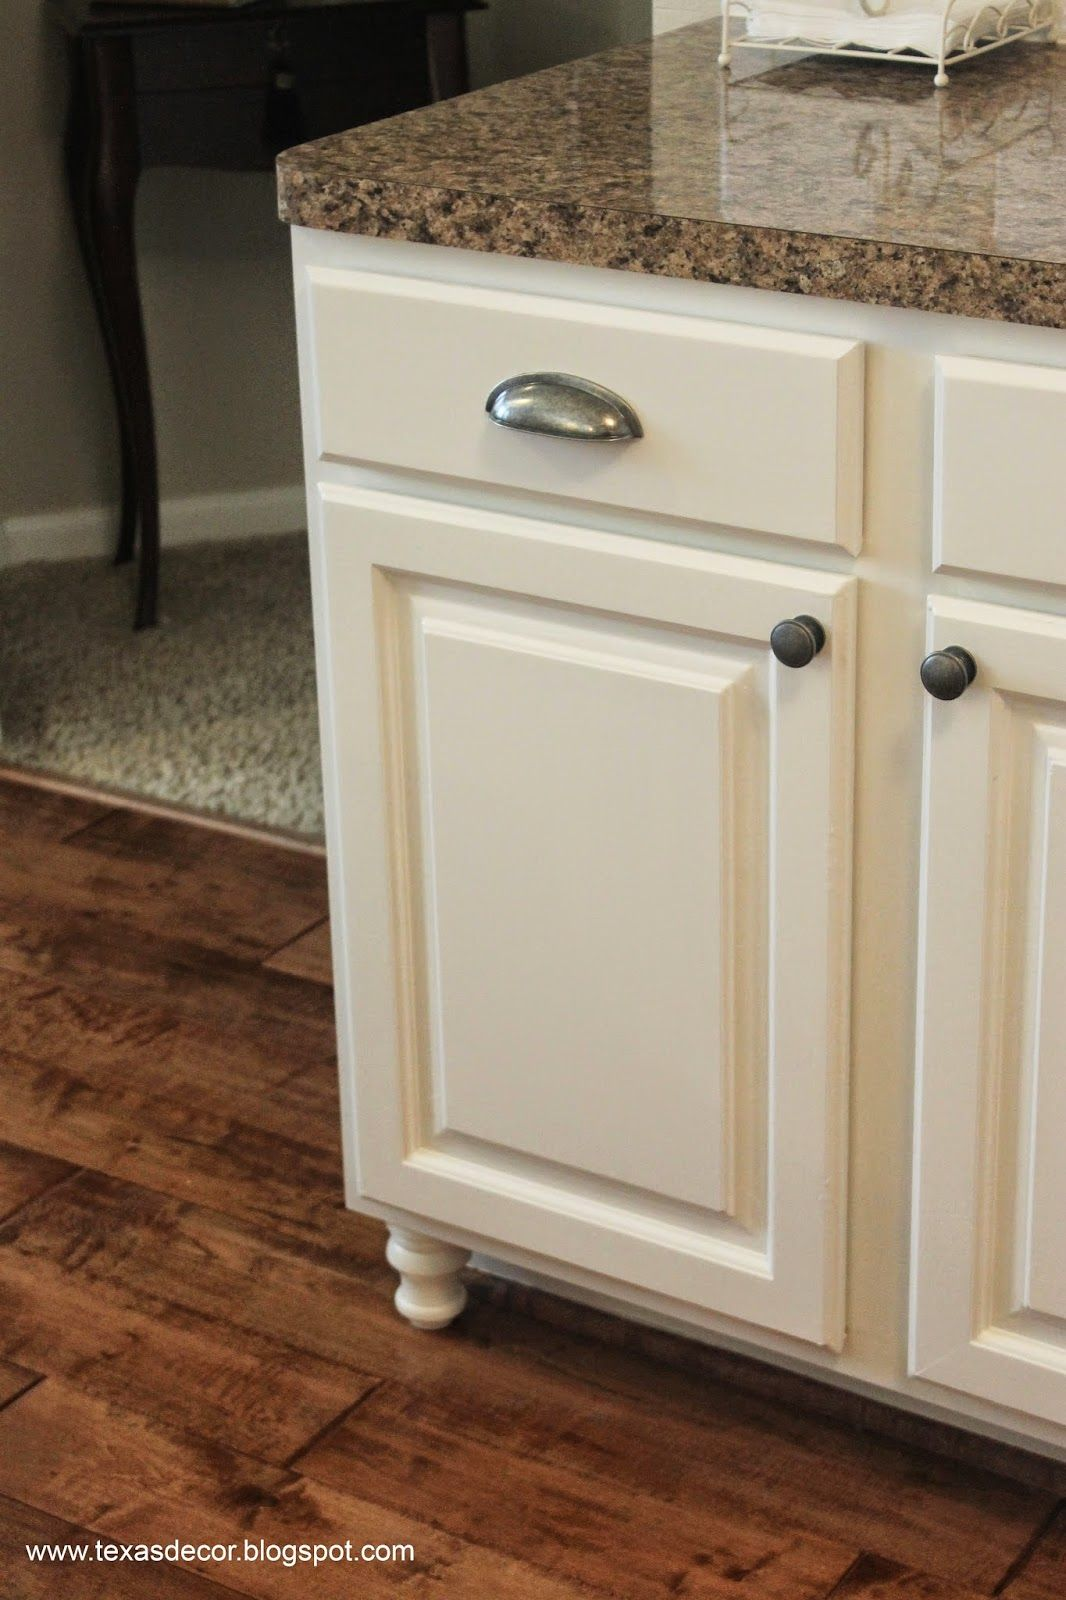 Adding Furniture Feet To Kitchen Cabinets for The Home